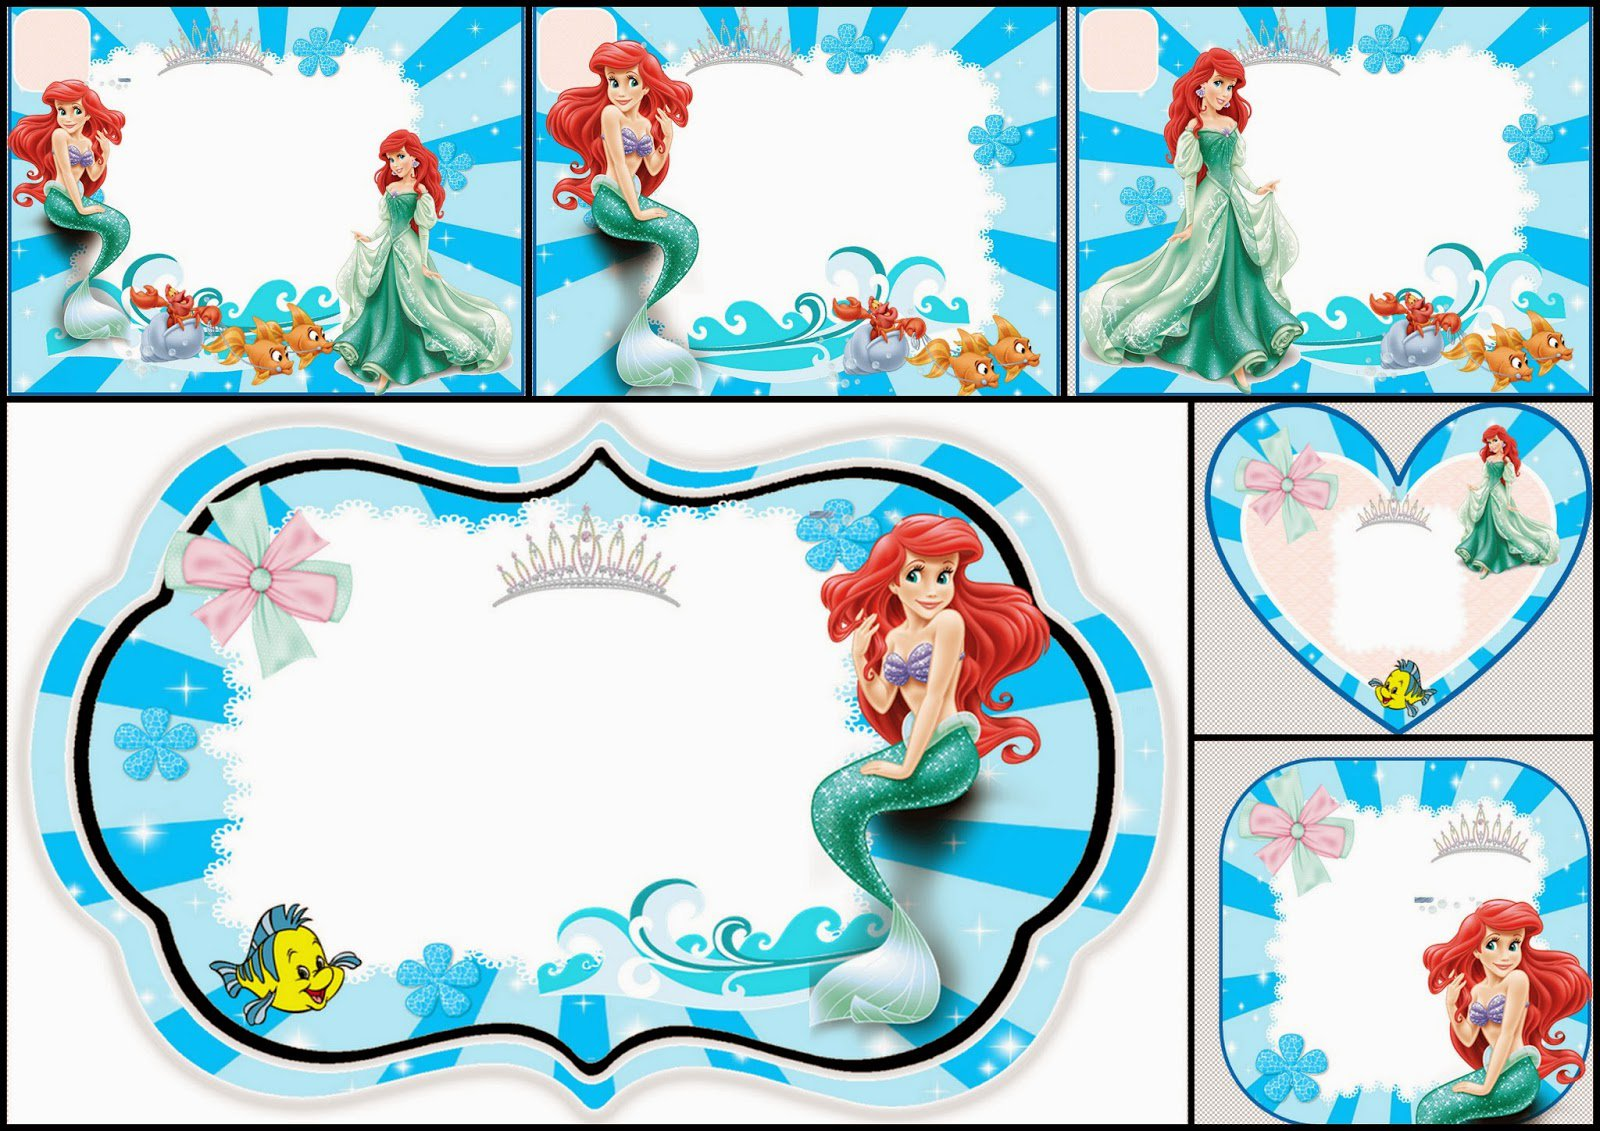 Disney Princess Free Printable Party Invitations